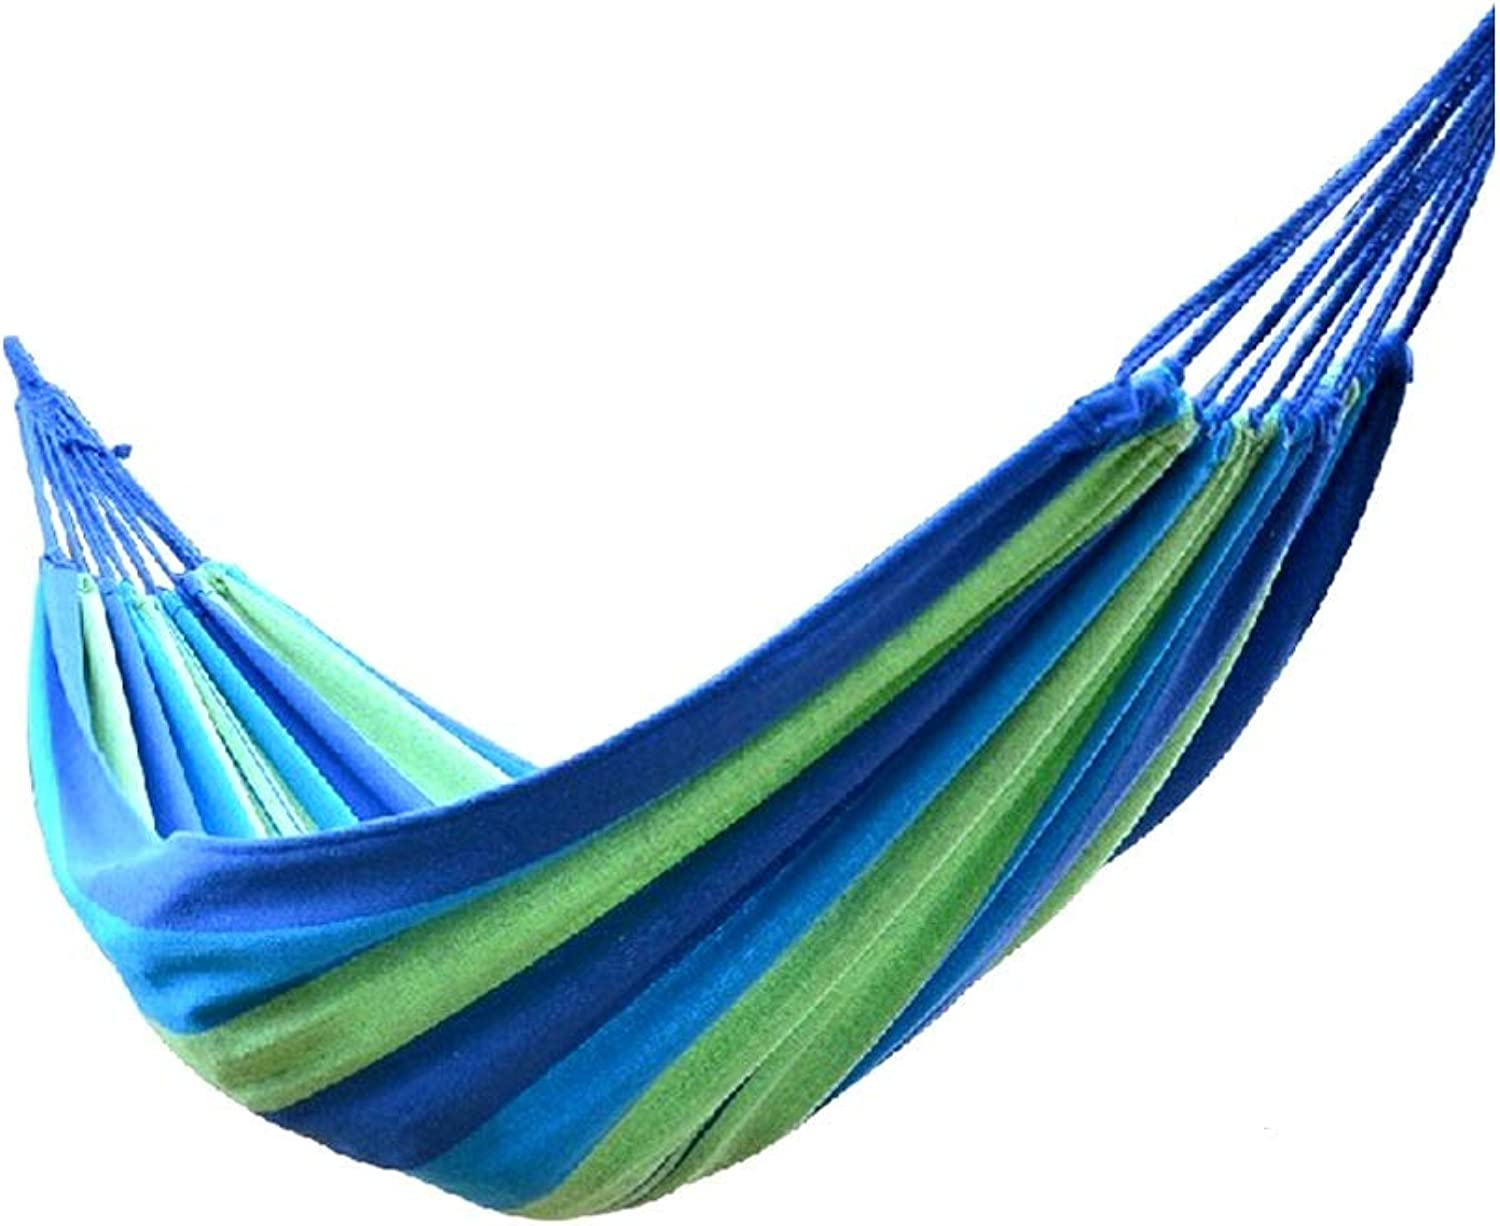 Guyuexuan Double Camping Hammocks  Lightweight Nylon Portable Hammock, Best Parachute Hammock for Backpacking, Camping, Hiking, Beach with Free Heavy Duty Carabiner Clips The Latest Style, Durable